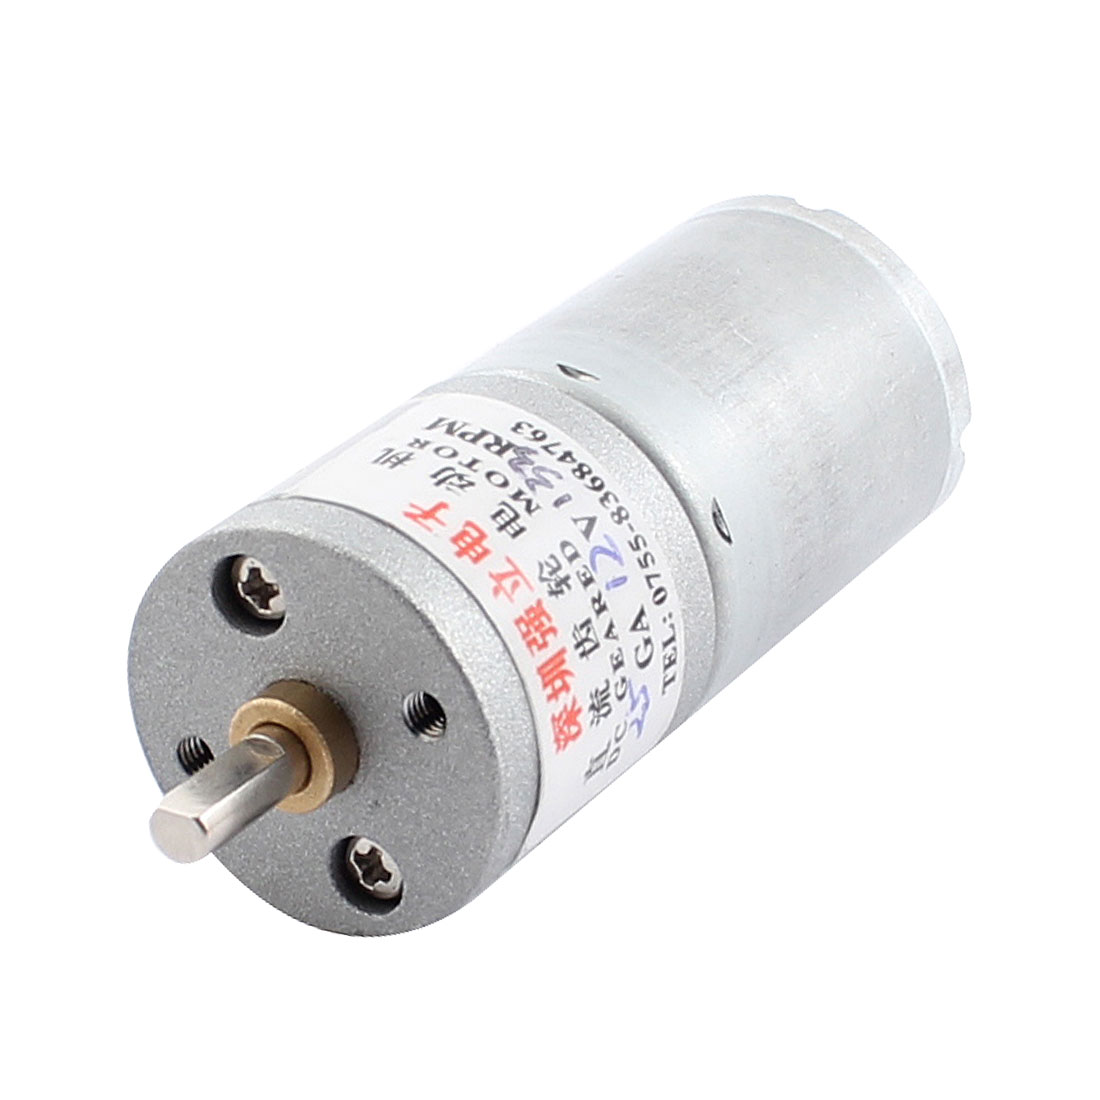 12V 133RPM Speed Soldering Cylindrical DC Geared Gear Box Motor